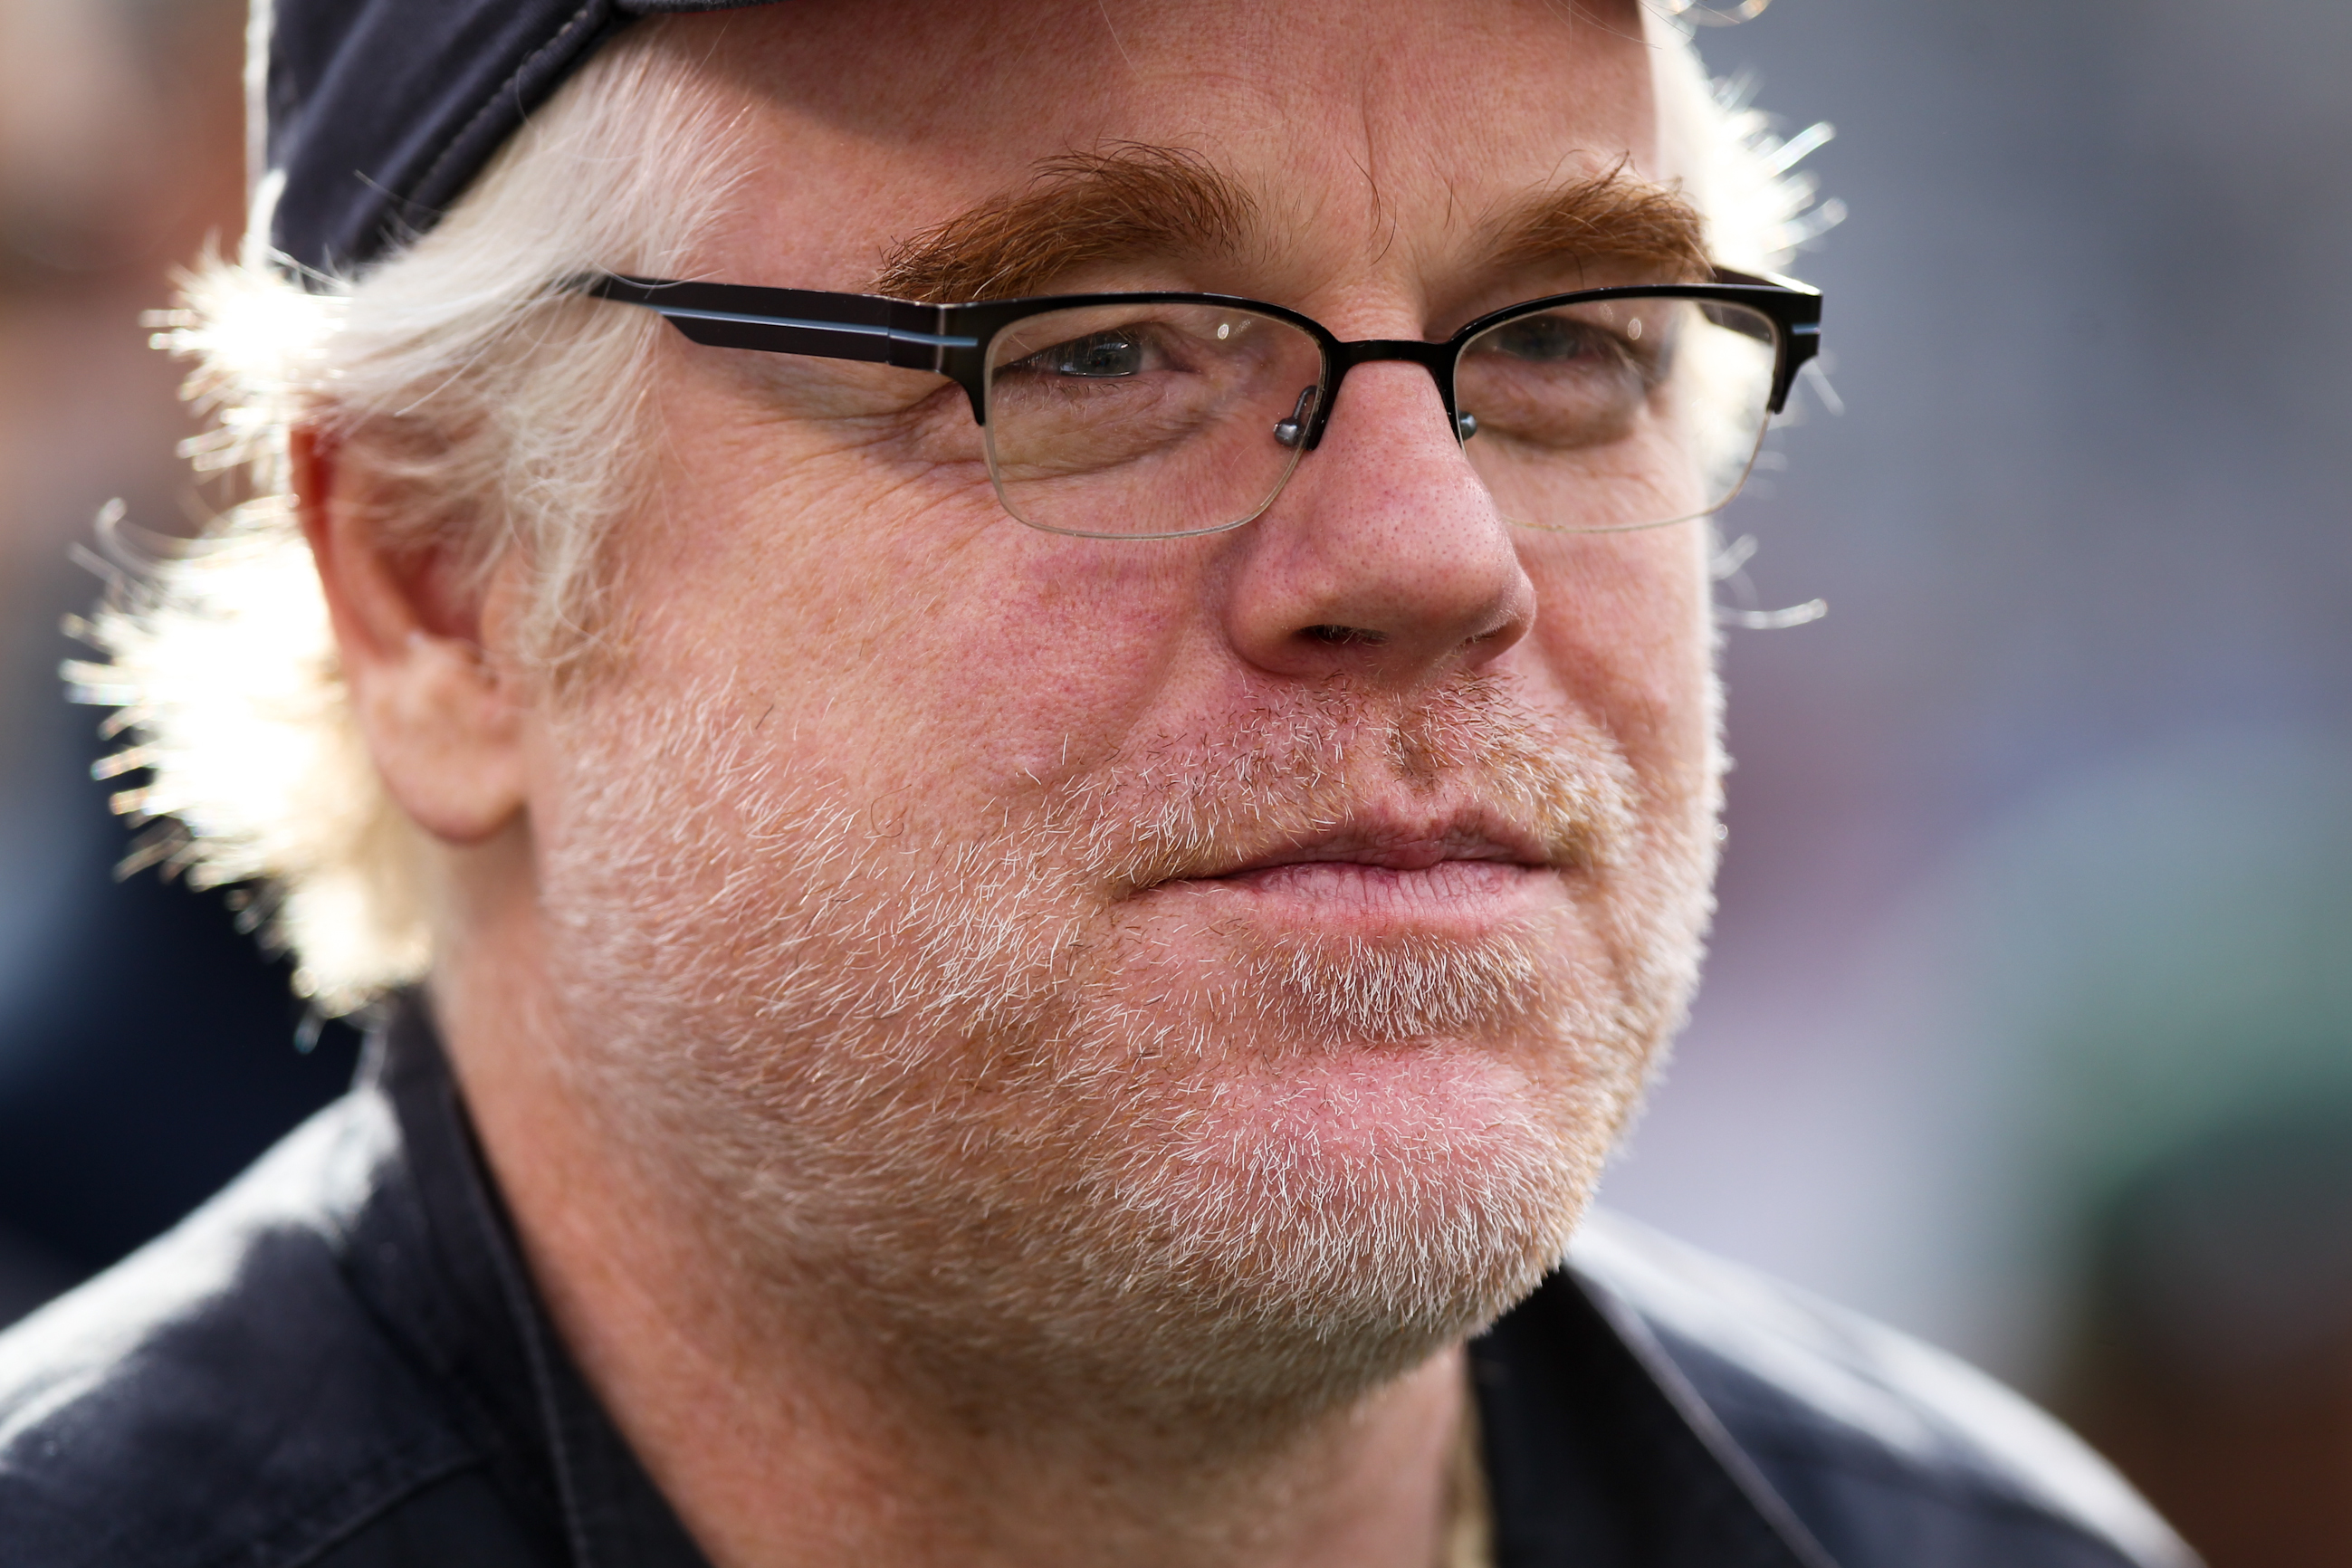 Gone Too Soon: Why Philip Seymour Hoffman's Death Hits Close to Home for Fans